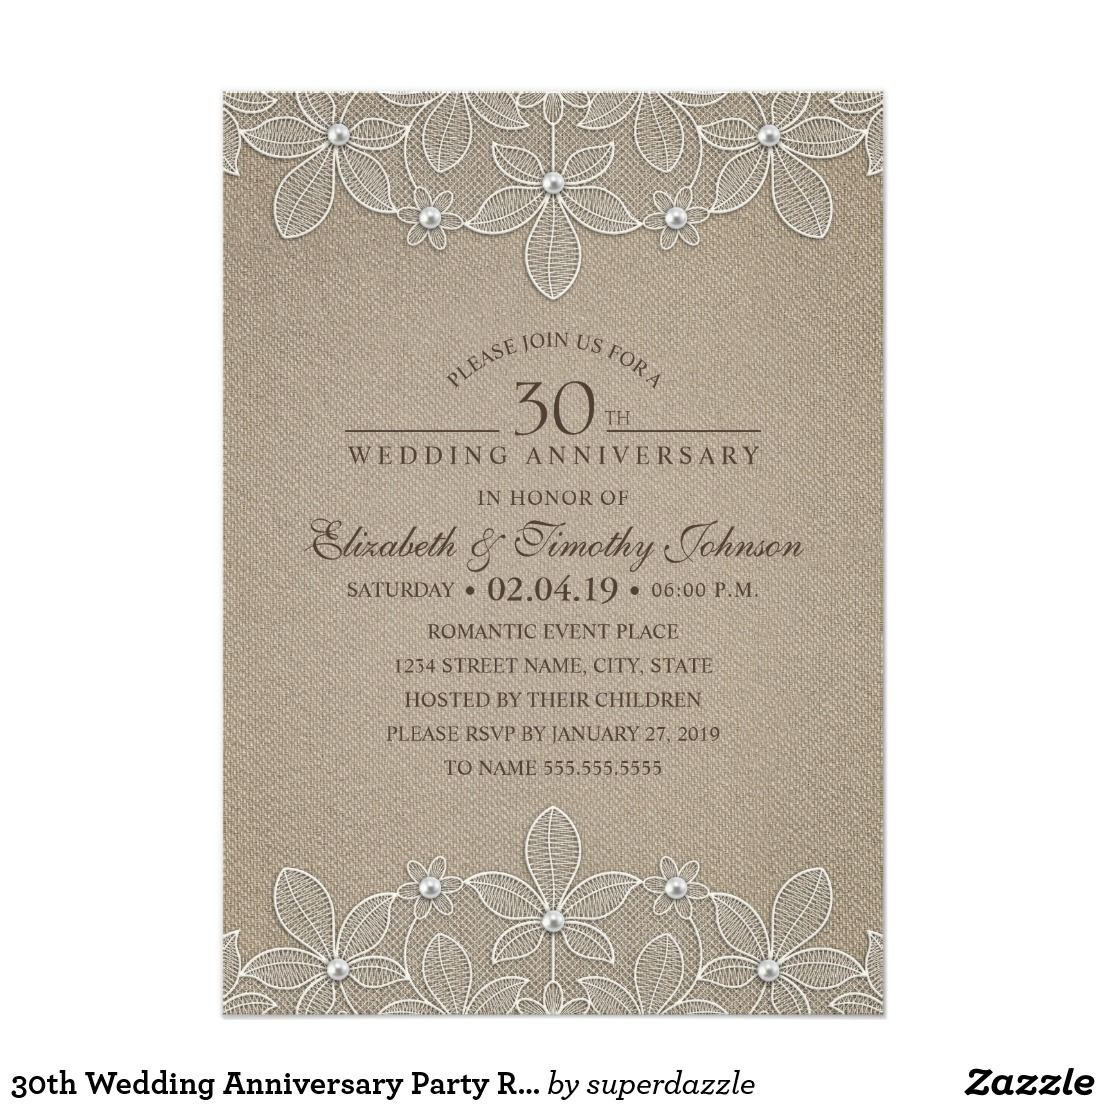 Wedding decorations for reception january 2019 th Wedding Anniversary Party Rustic Pearl Lace Card  Rustic